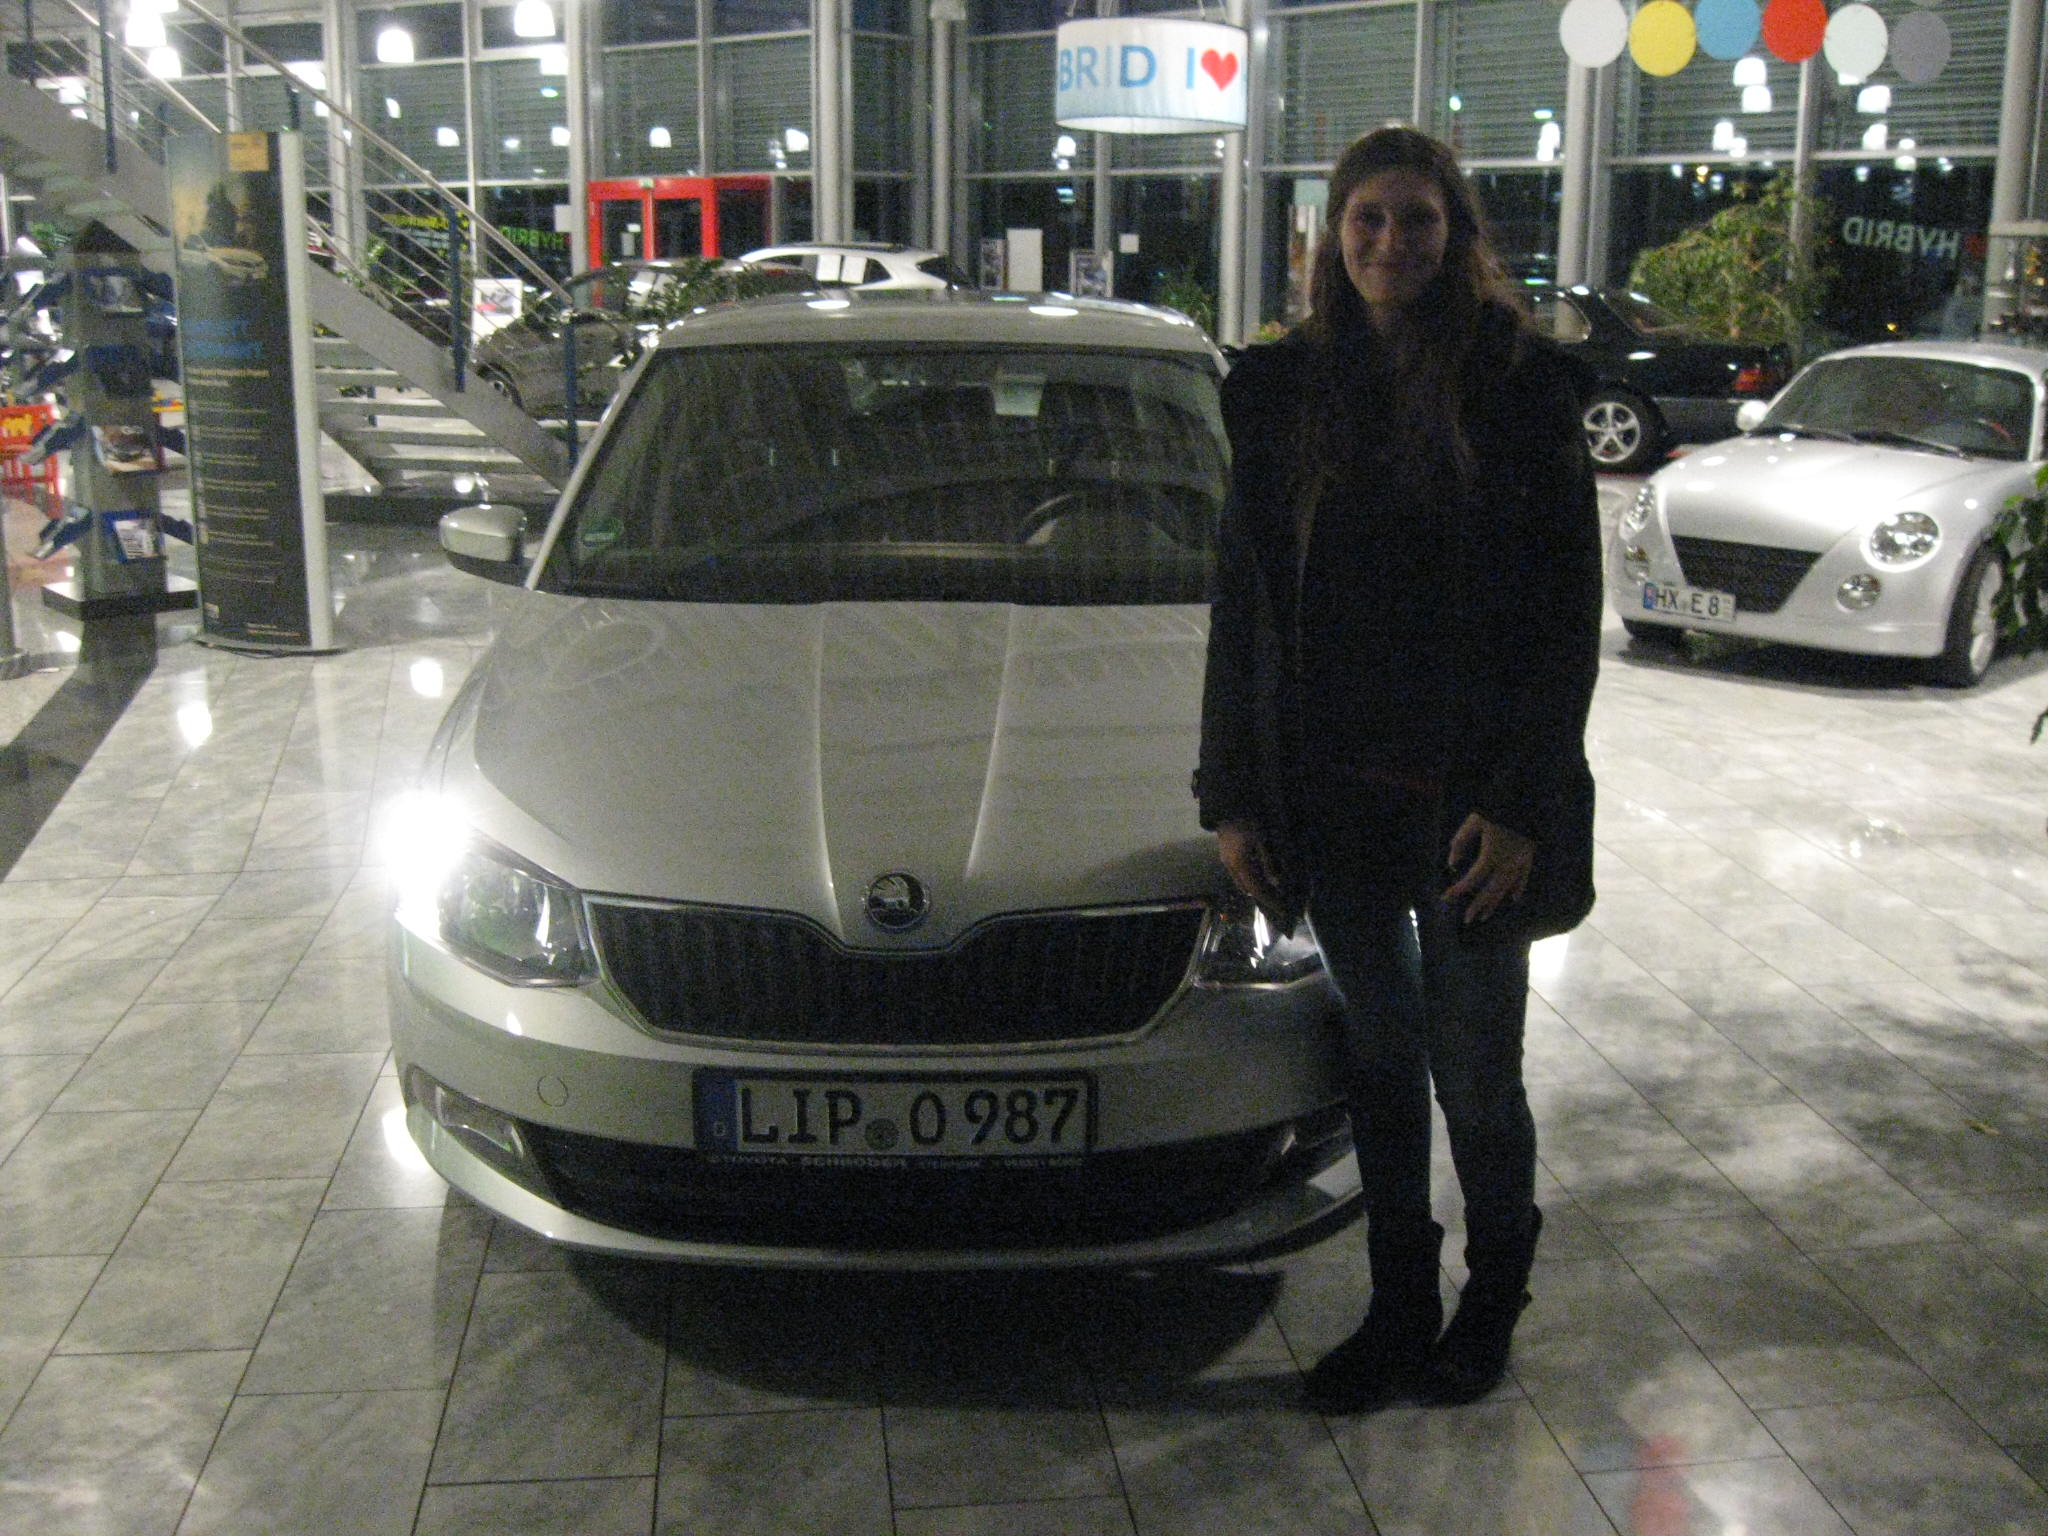 tl_files/toyota/img/bilder/Frau Harder_Skoda fabia.JPG